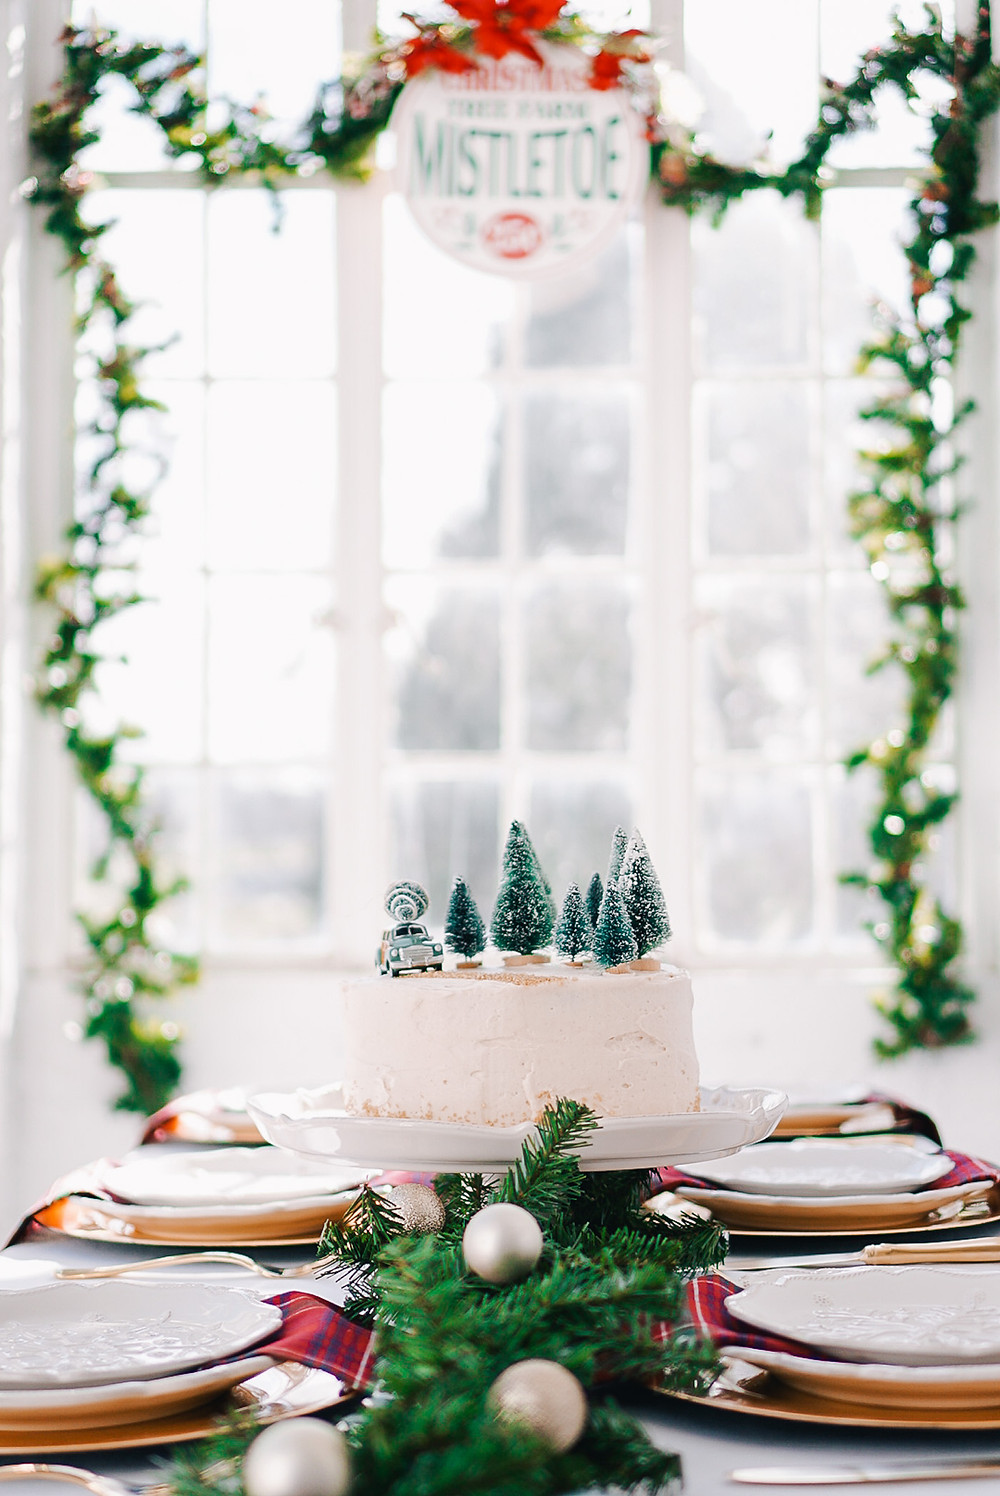 A fun and festive Christmas holiday tablescape with red and green plaid napkins, greenery, ornaments and bottlebrush trees on a white table.